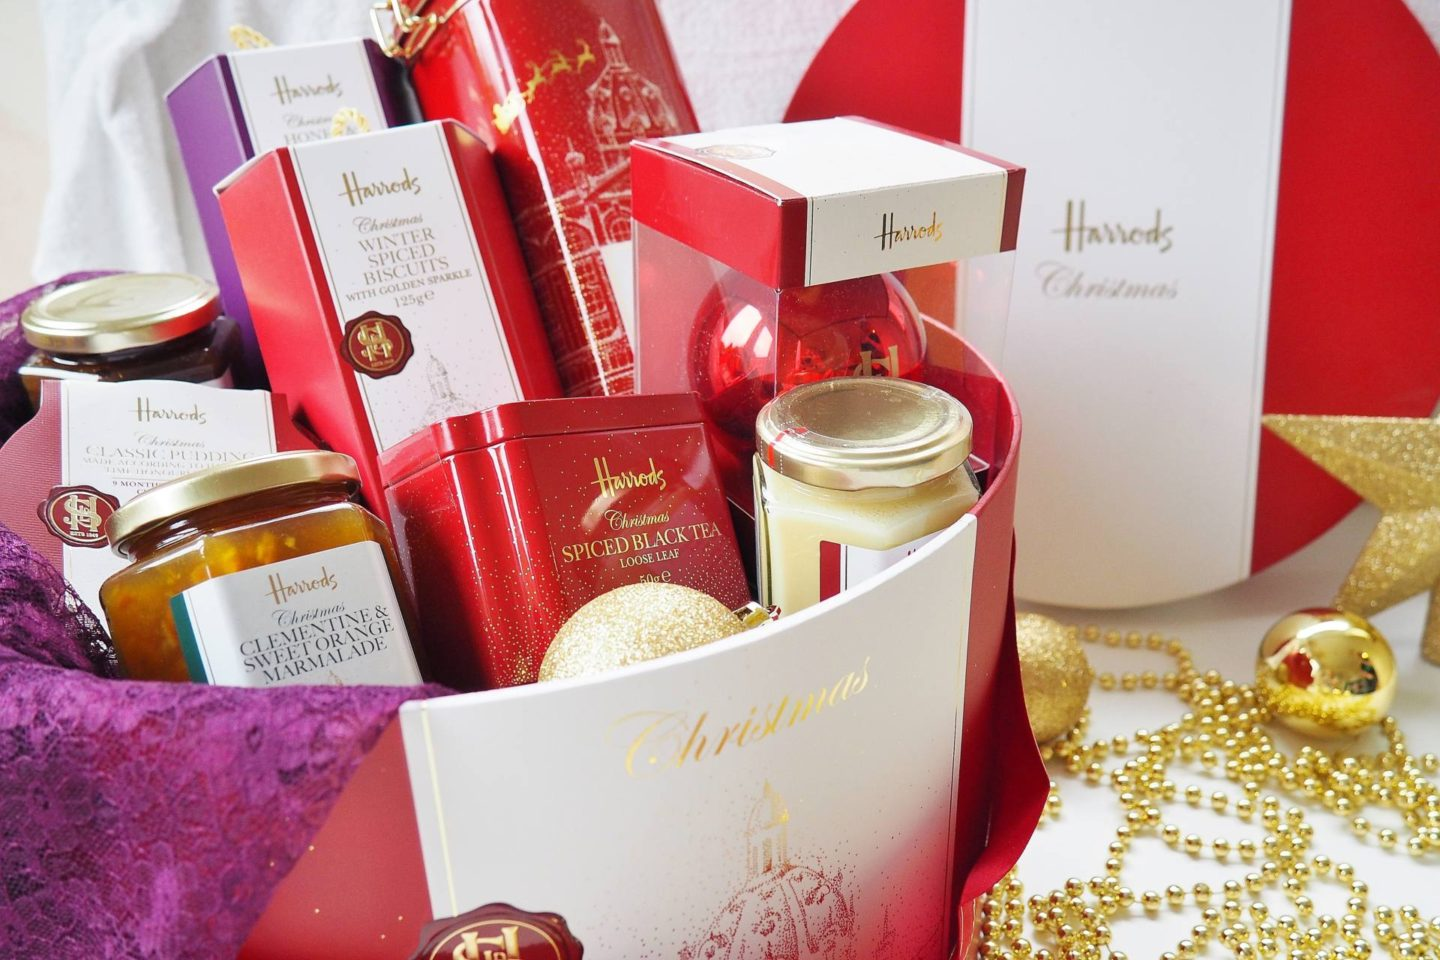 Emma Victoria Stokes Harrods Christmas Hamper Box Blog Review Tea